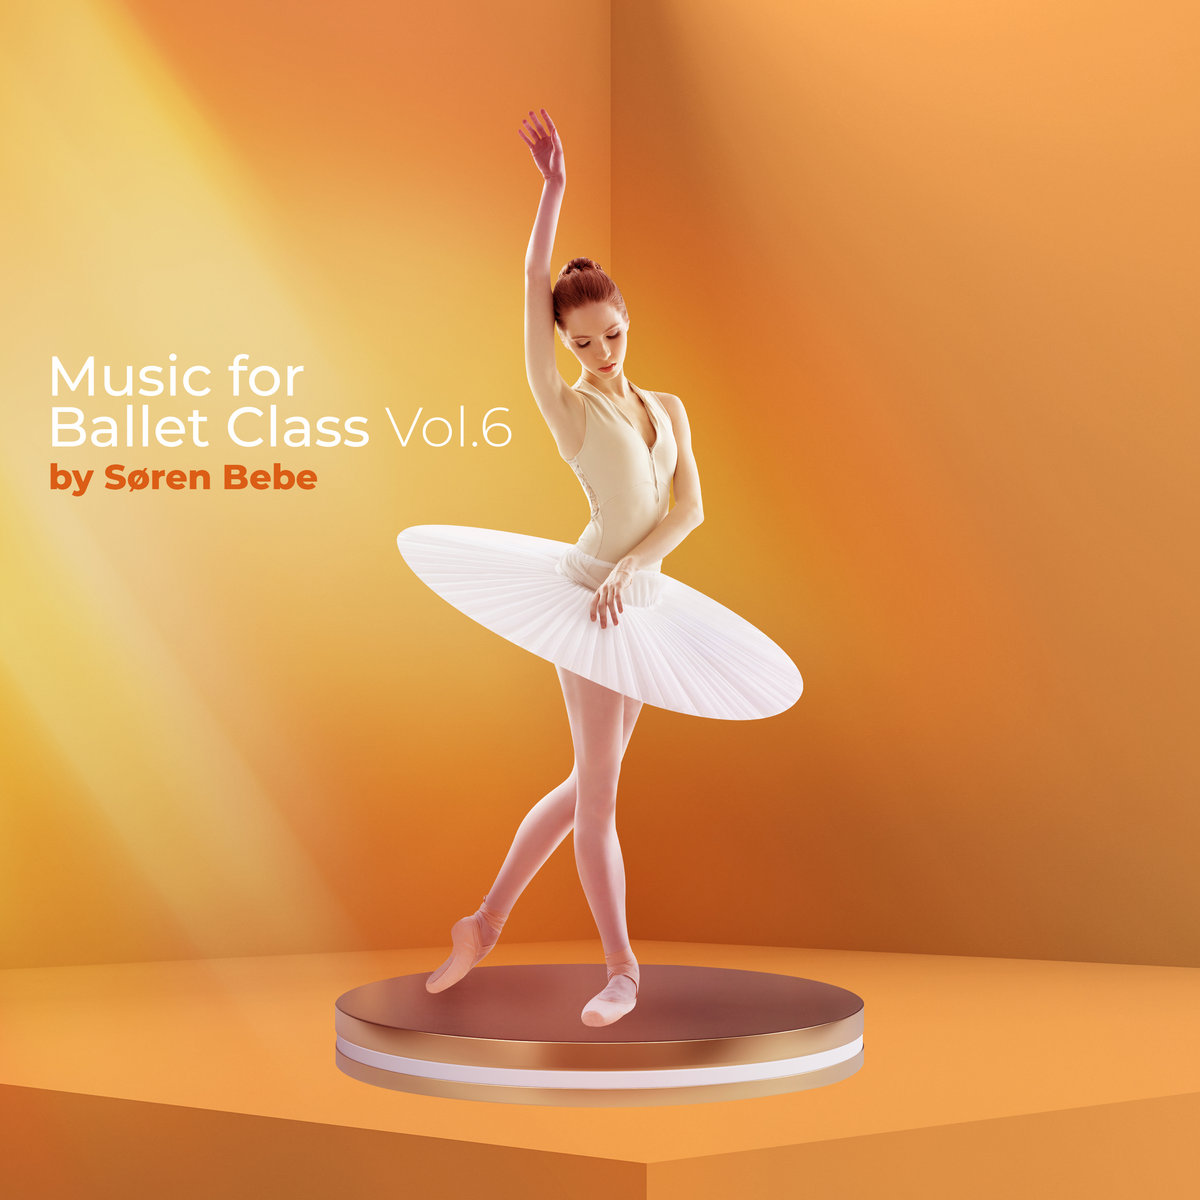 Music For Ballet Class Vol 6 Søren Bebe